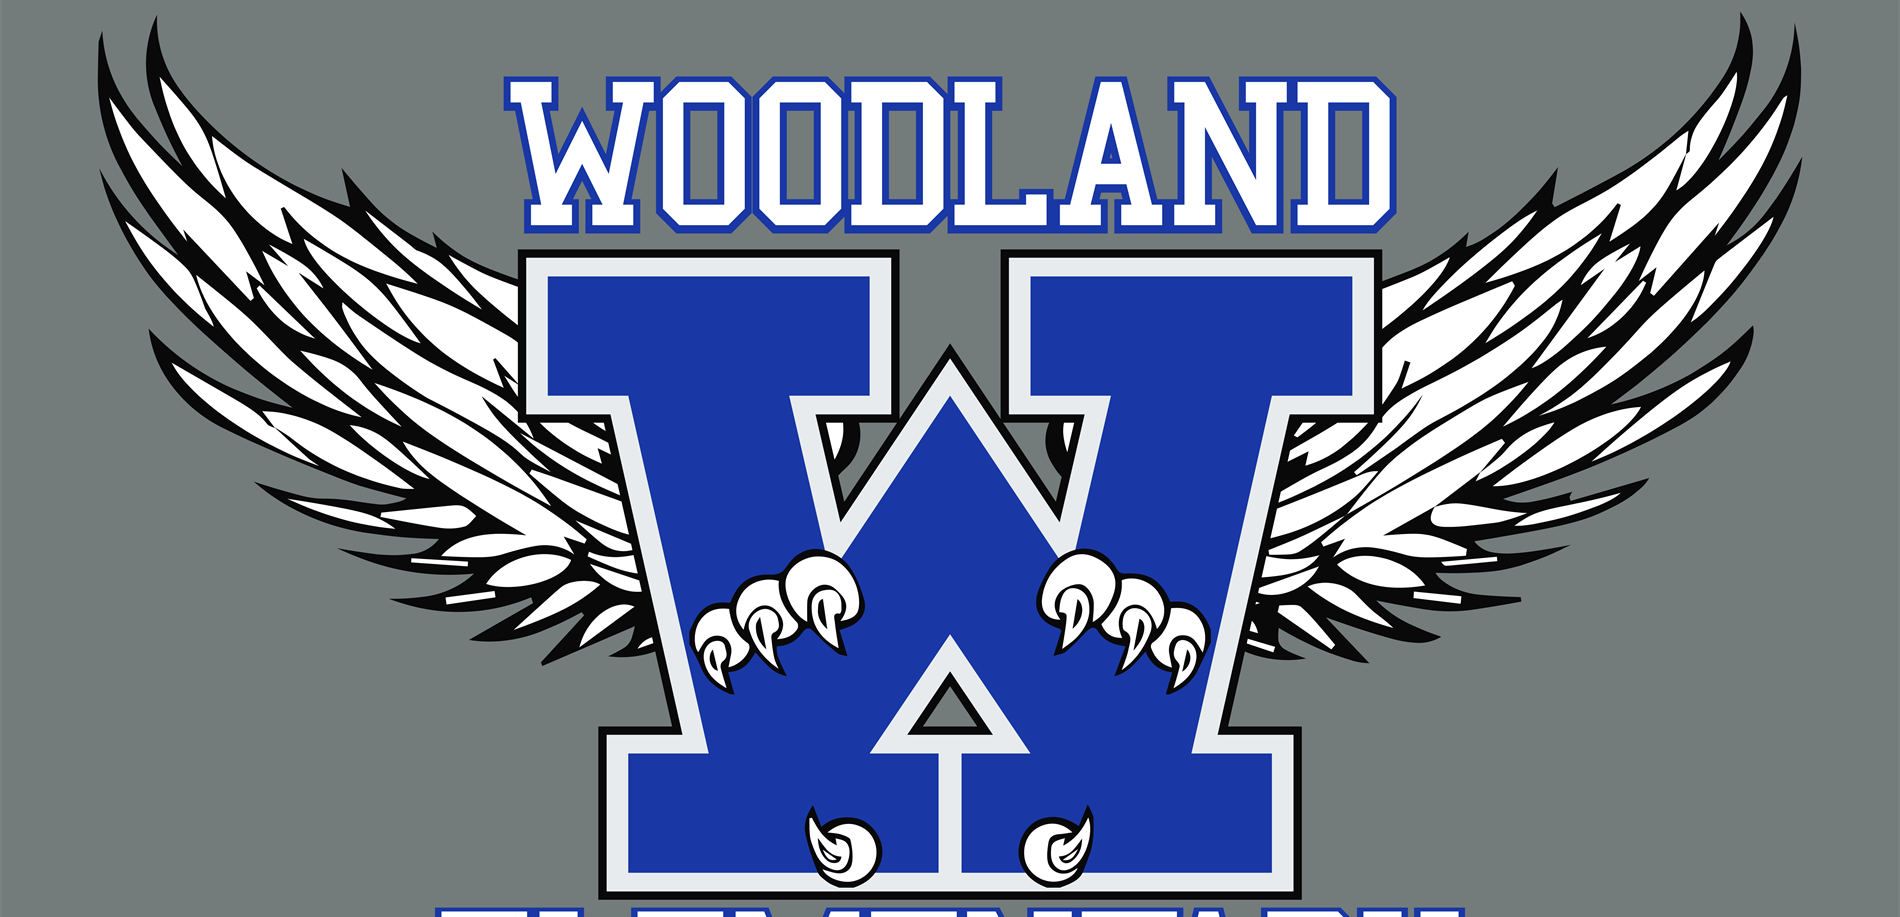 Welcome to Woodland Elementary!